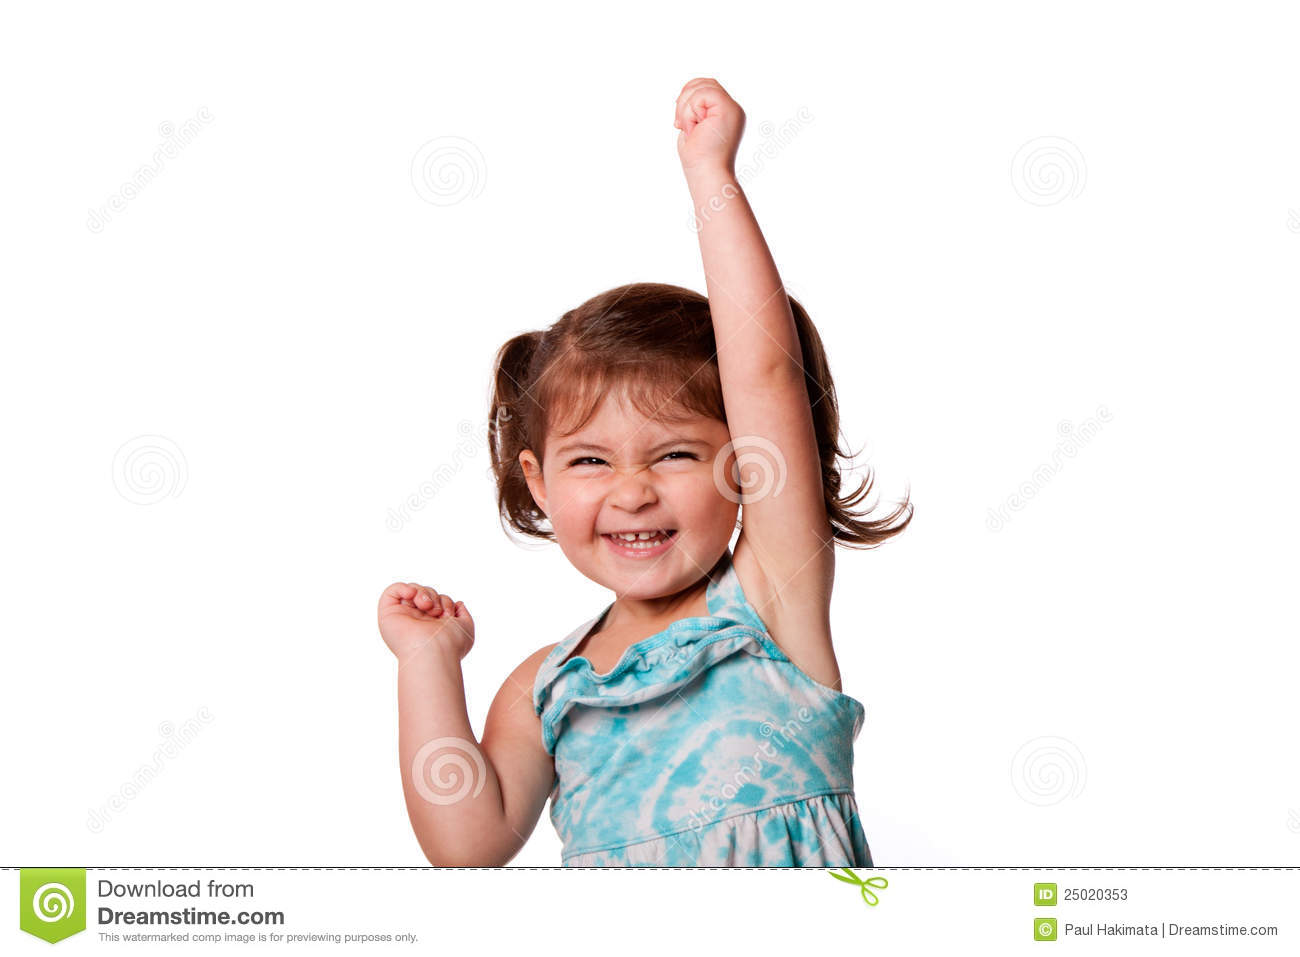 Cute beautiful funny happy little toddler girl celebrating with hand